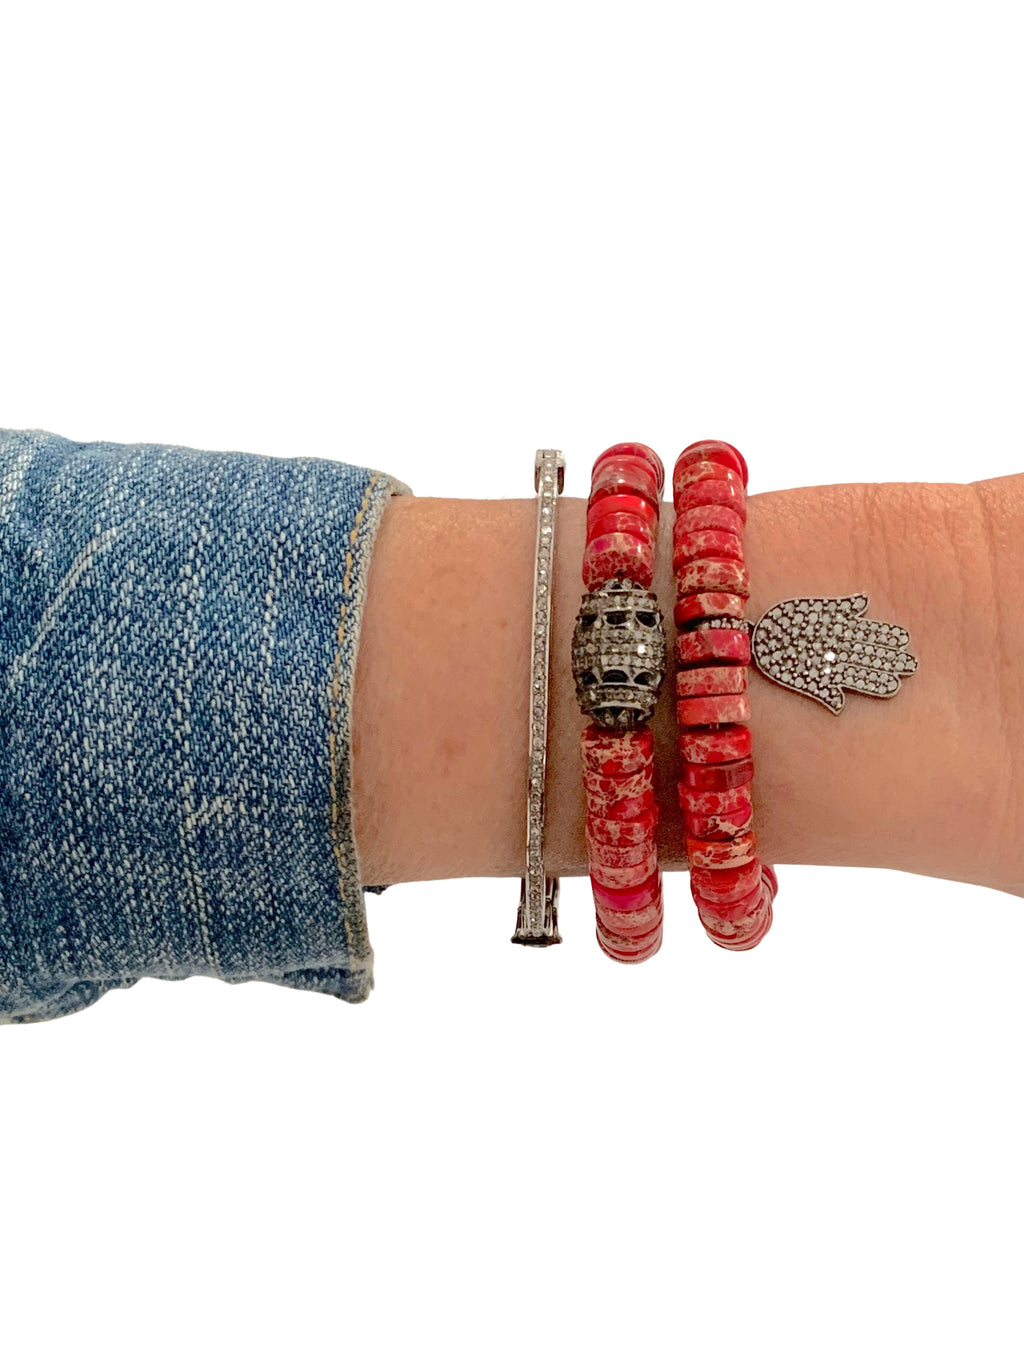 Pave Diamond Hamsa set in Sterling Silver on Red Jasper